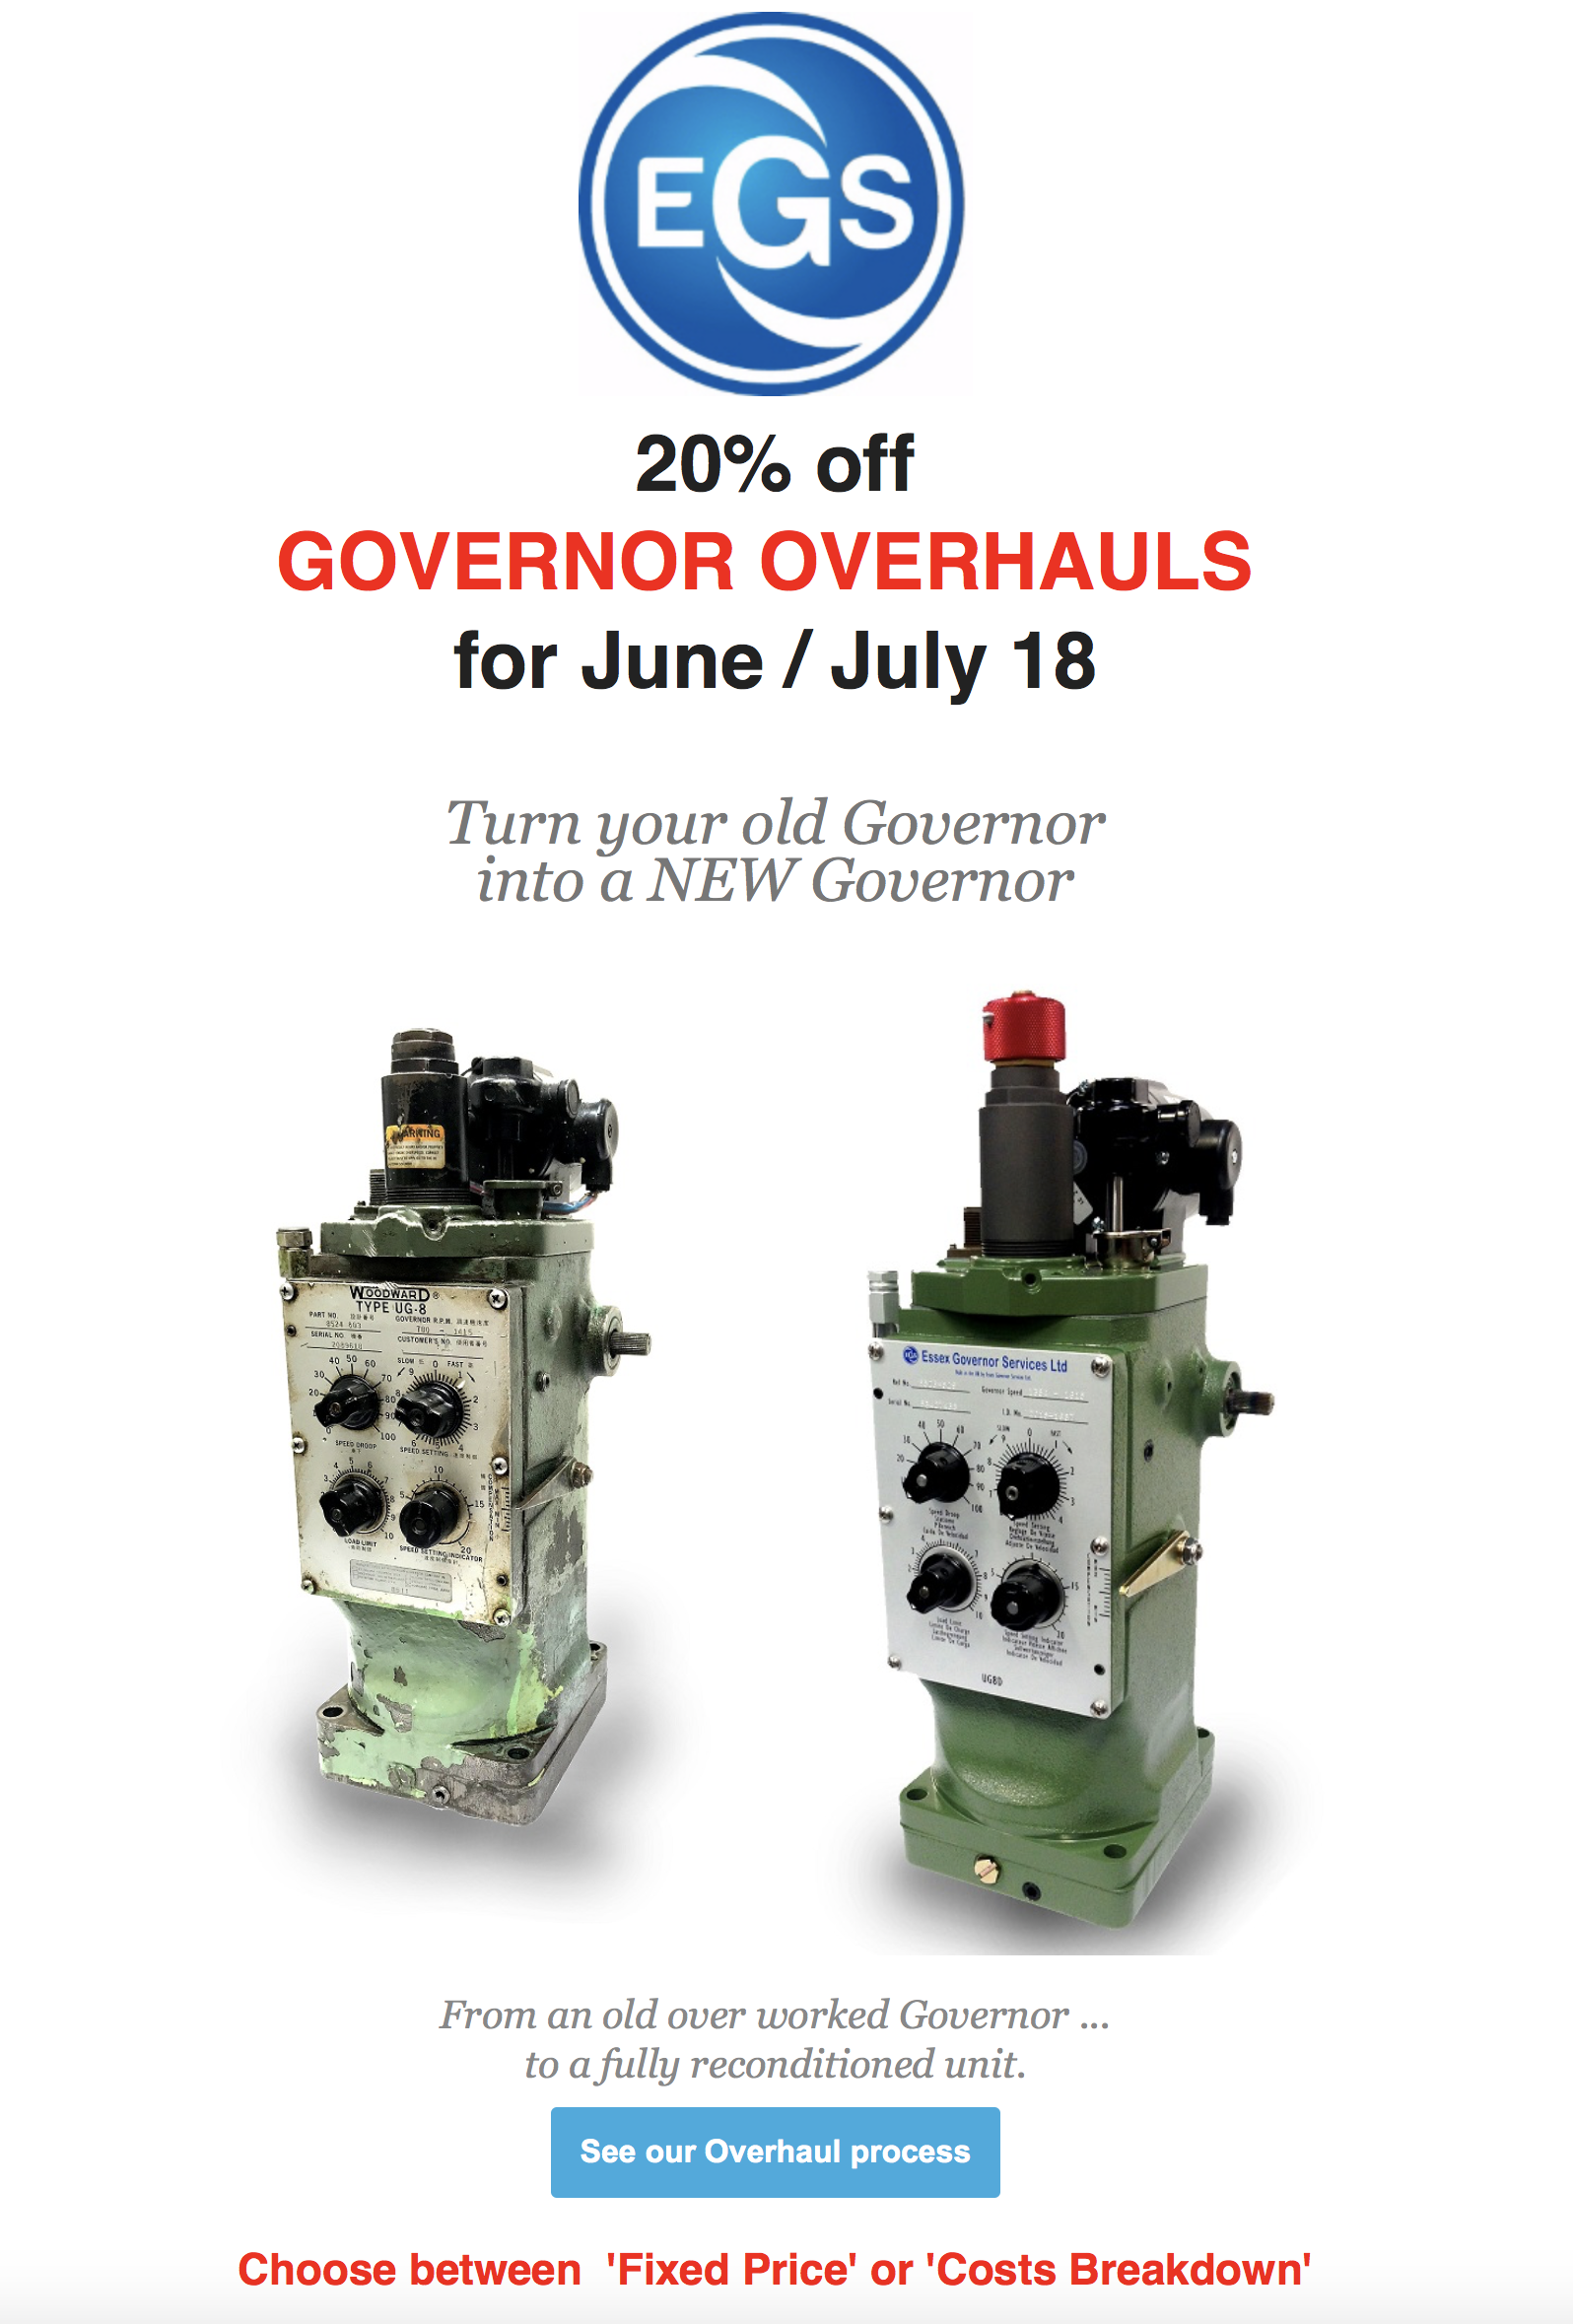 EGS Governor Overhauls special offers for June/July 2018